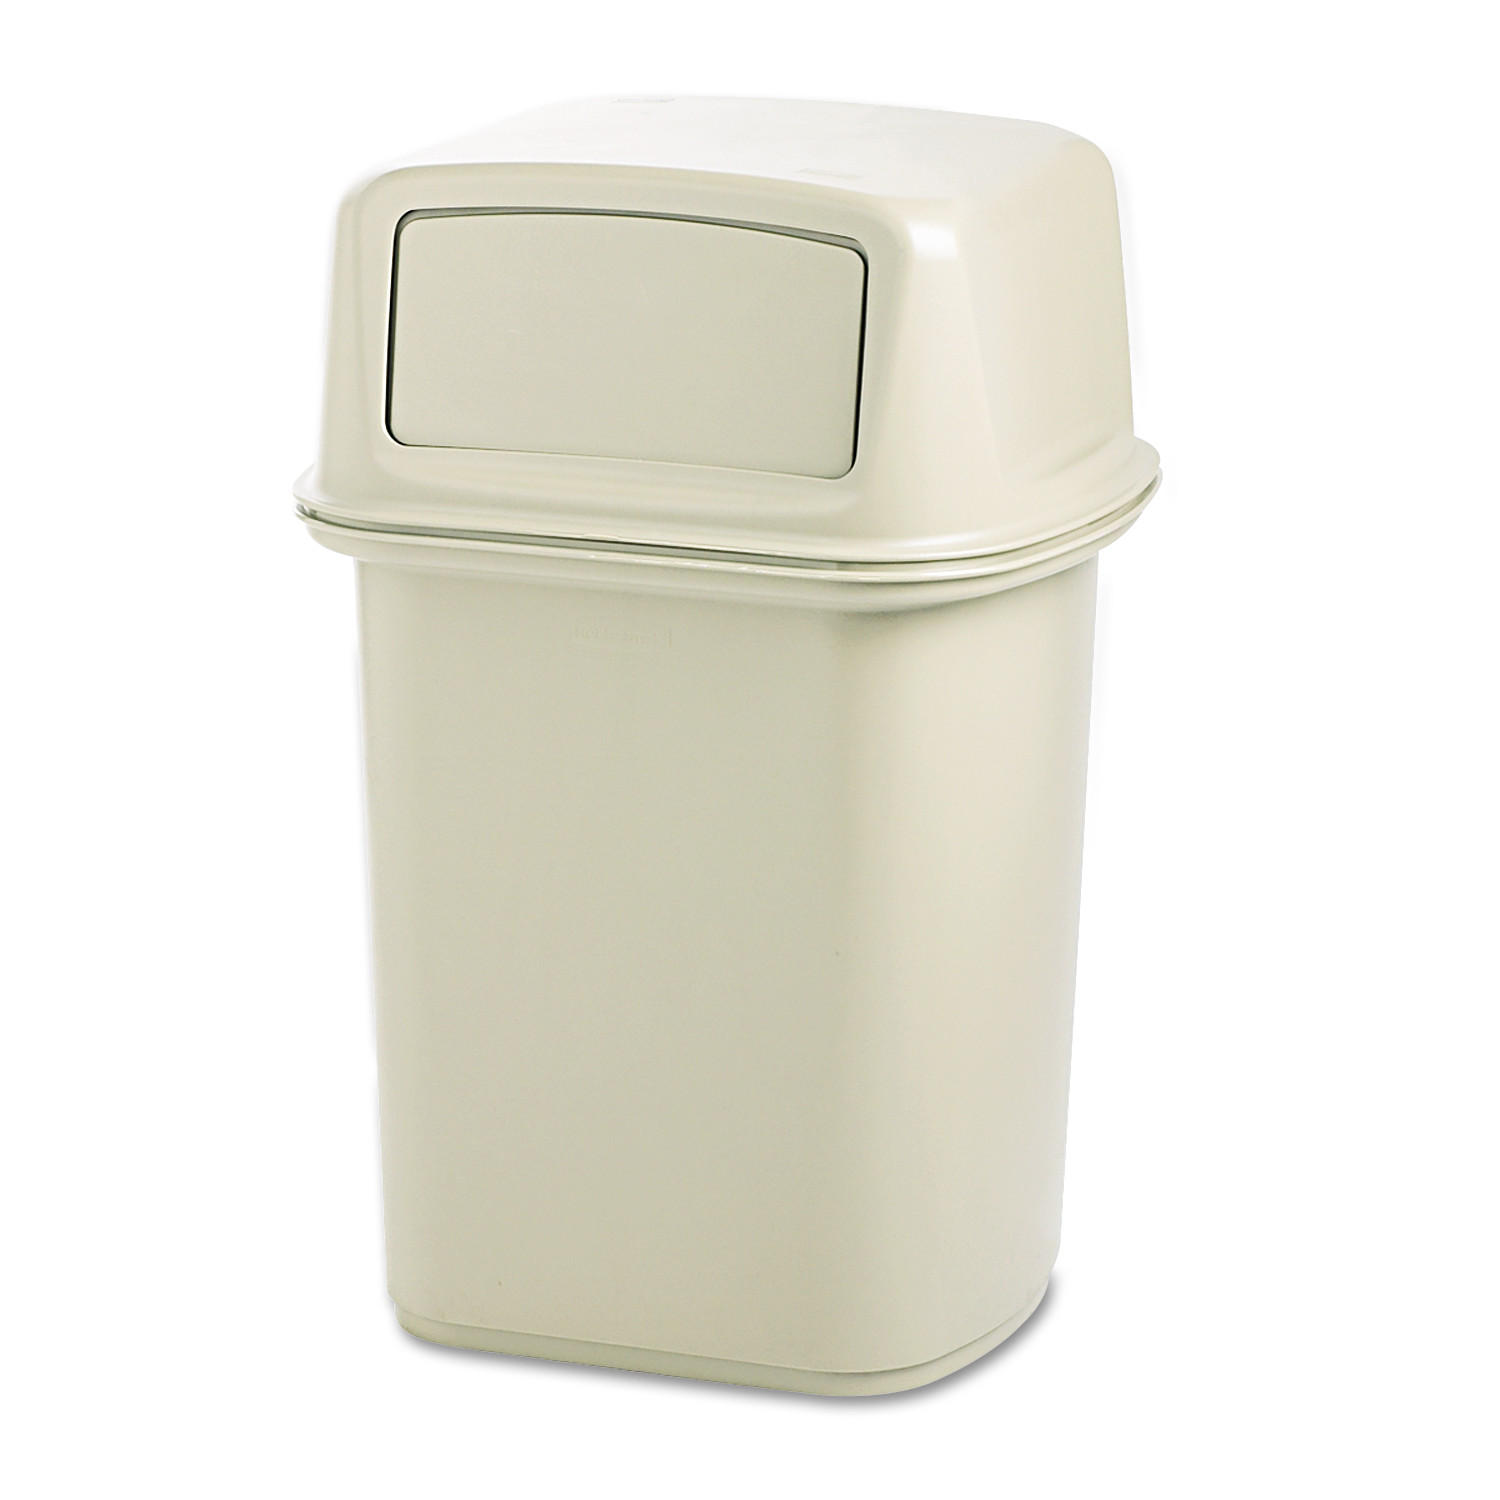 Rubbermaid Commercial Ranger Fire-Safe Container, Square